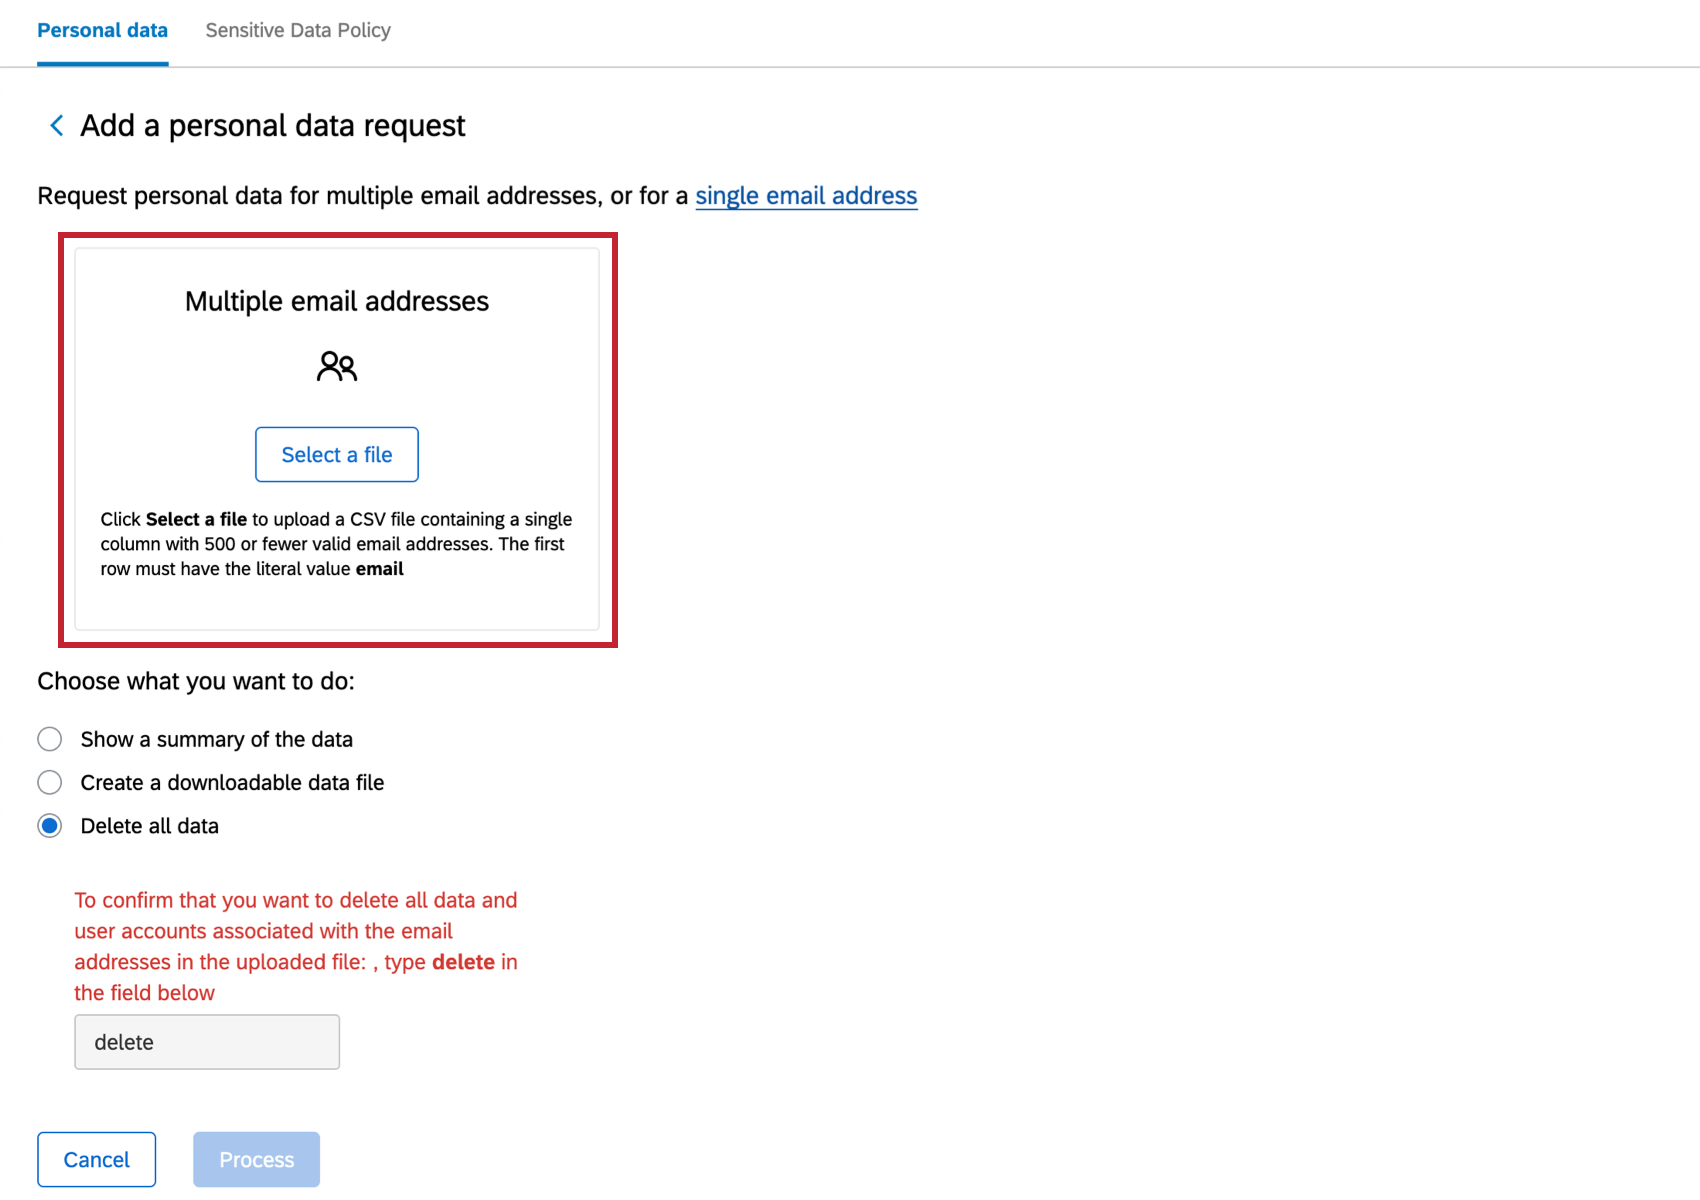 Now that multiple email addresses is selected, new button for uploading a file